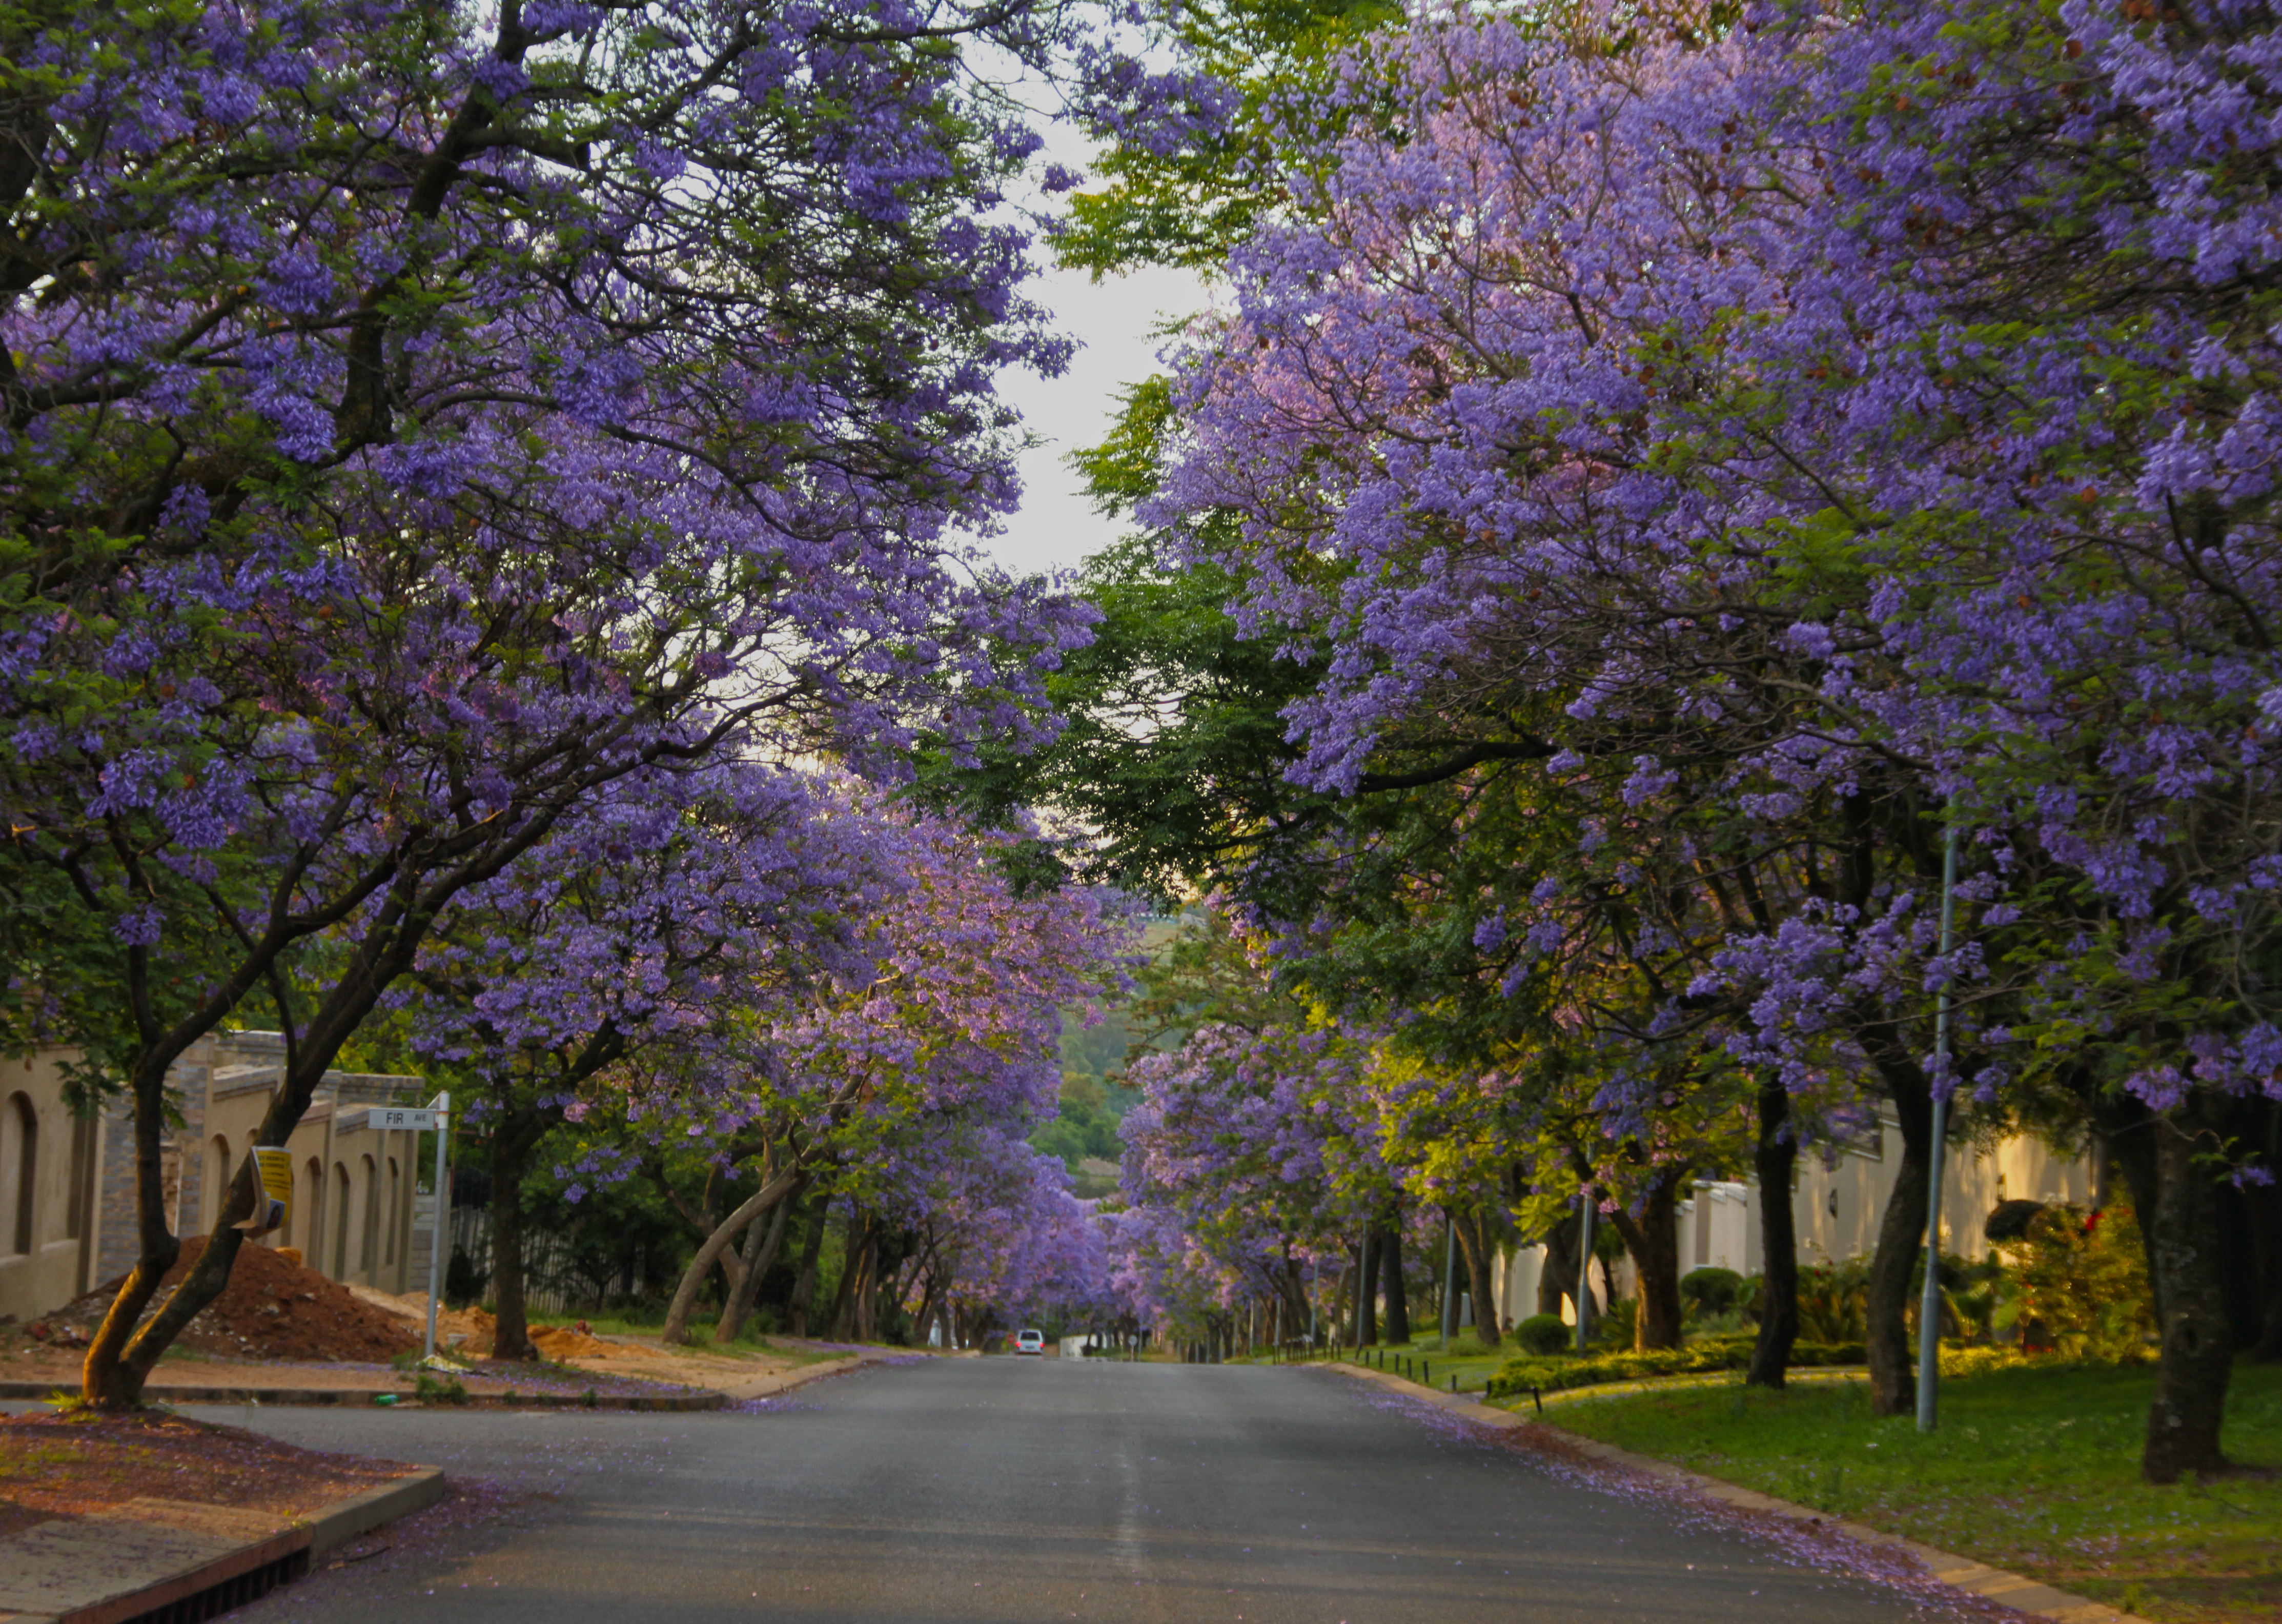 File:Street lined with Jacarandas, Bryanston, South Africa ...